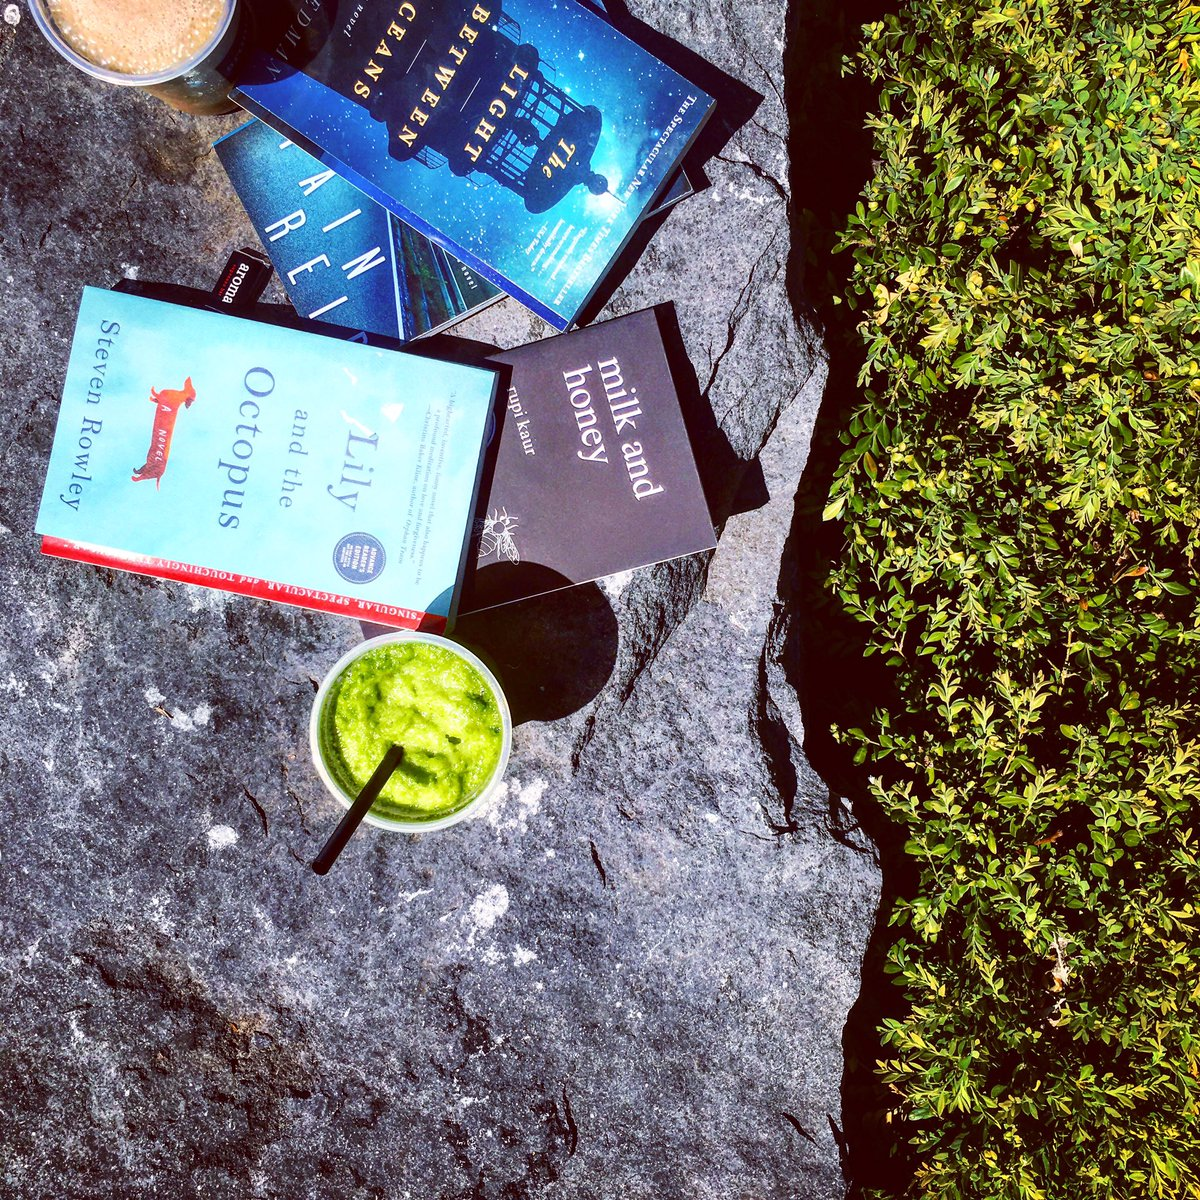 Hot reads + cool drinks for #NationalBookLoversDay: RT before 9pm for chance to win a @SimonSchusterCA book! https://t.co/QRLBdYjkBj